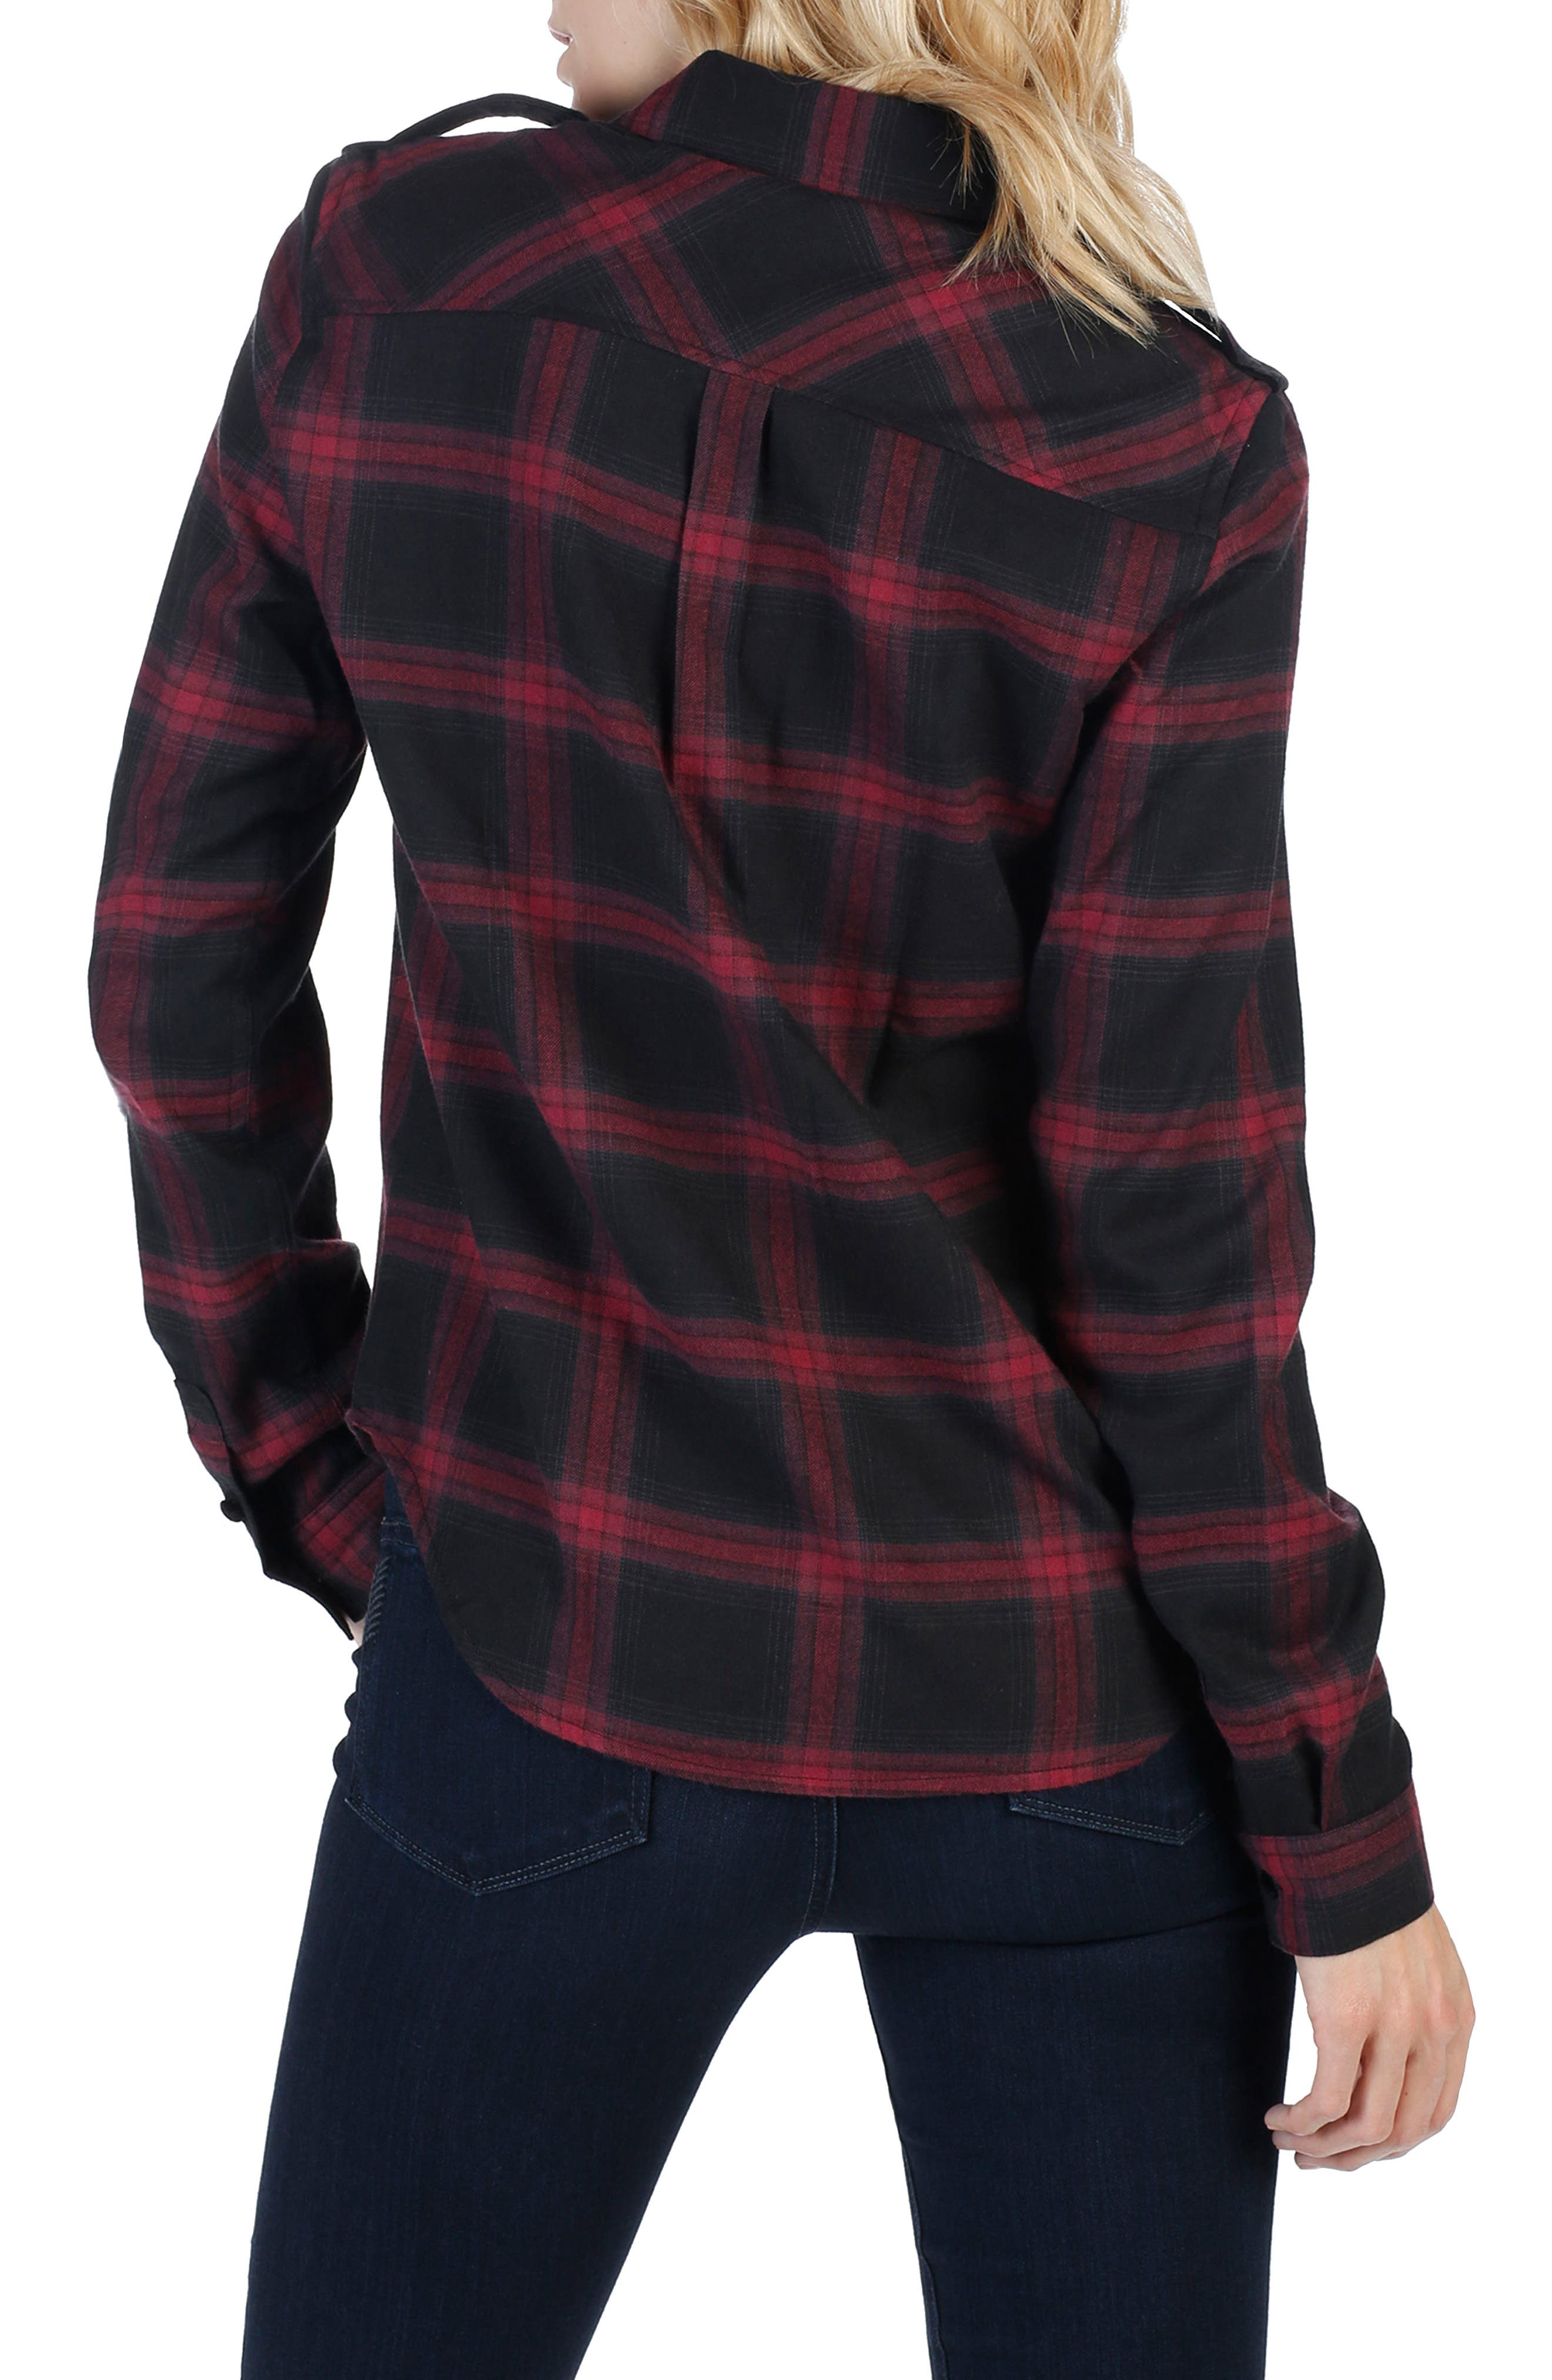 Adilene Plaid Shirt,                             Alternate thumbnail 2, color,                             True Black/ Dark Magenta